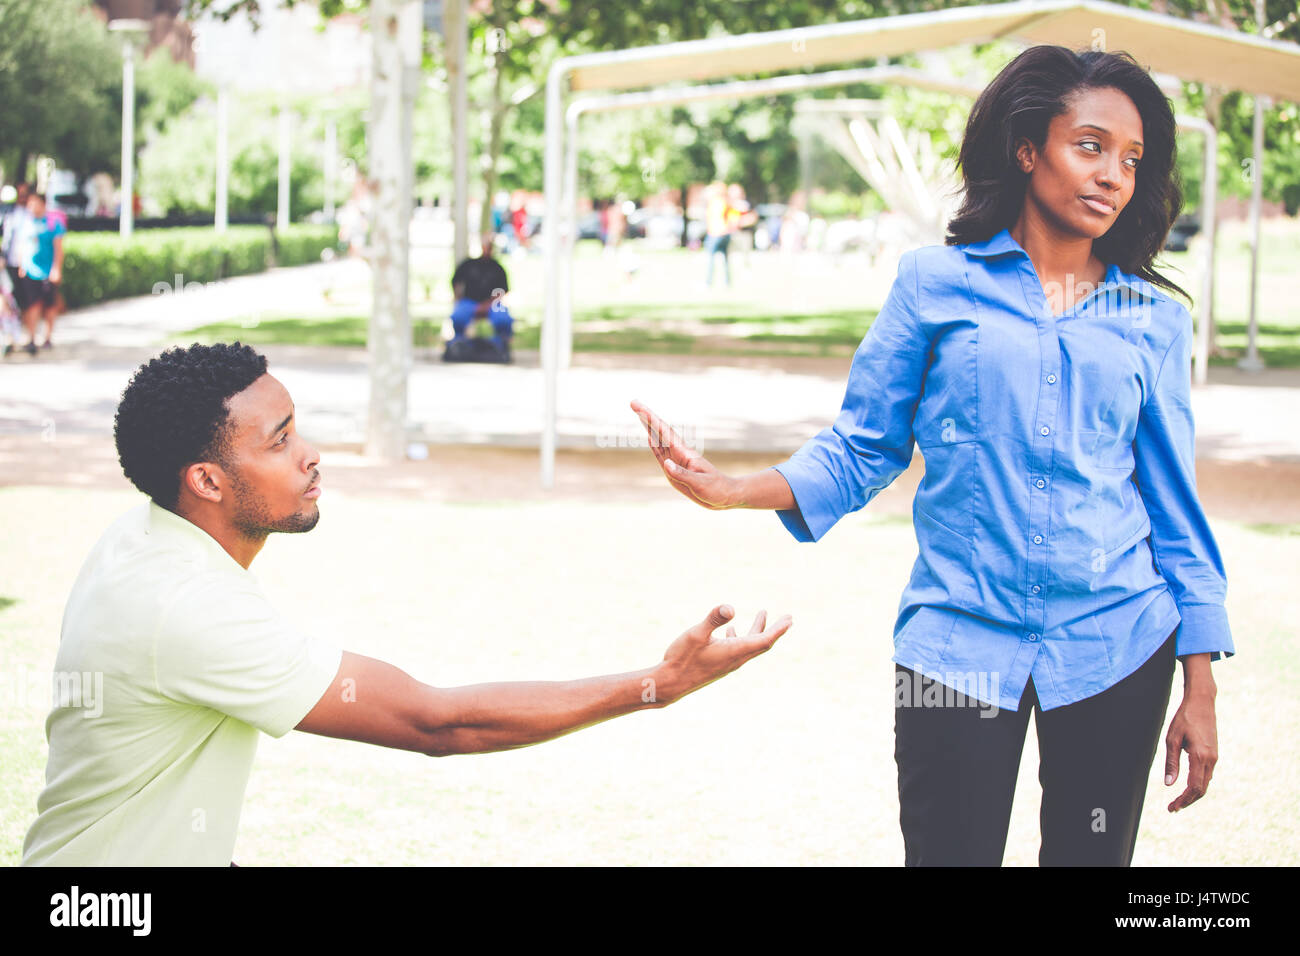 Portrait of young woman showing talk to hand gesture to desperate man hoping to persuade her to see his point. Please - Stock Image